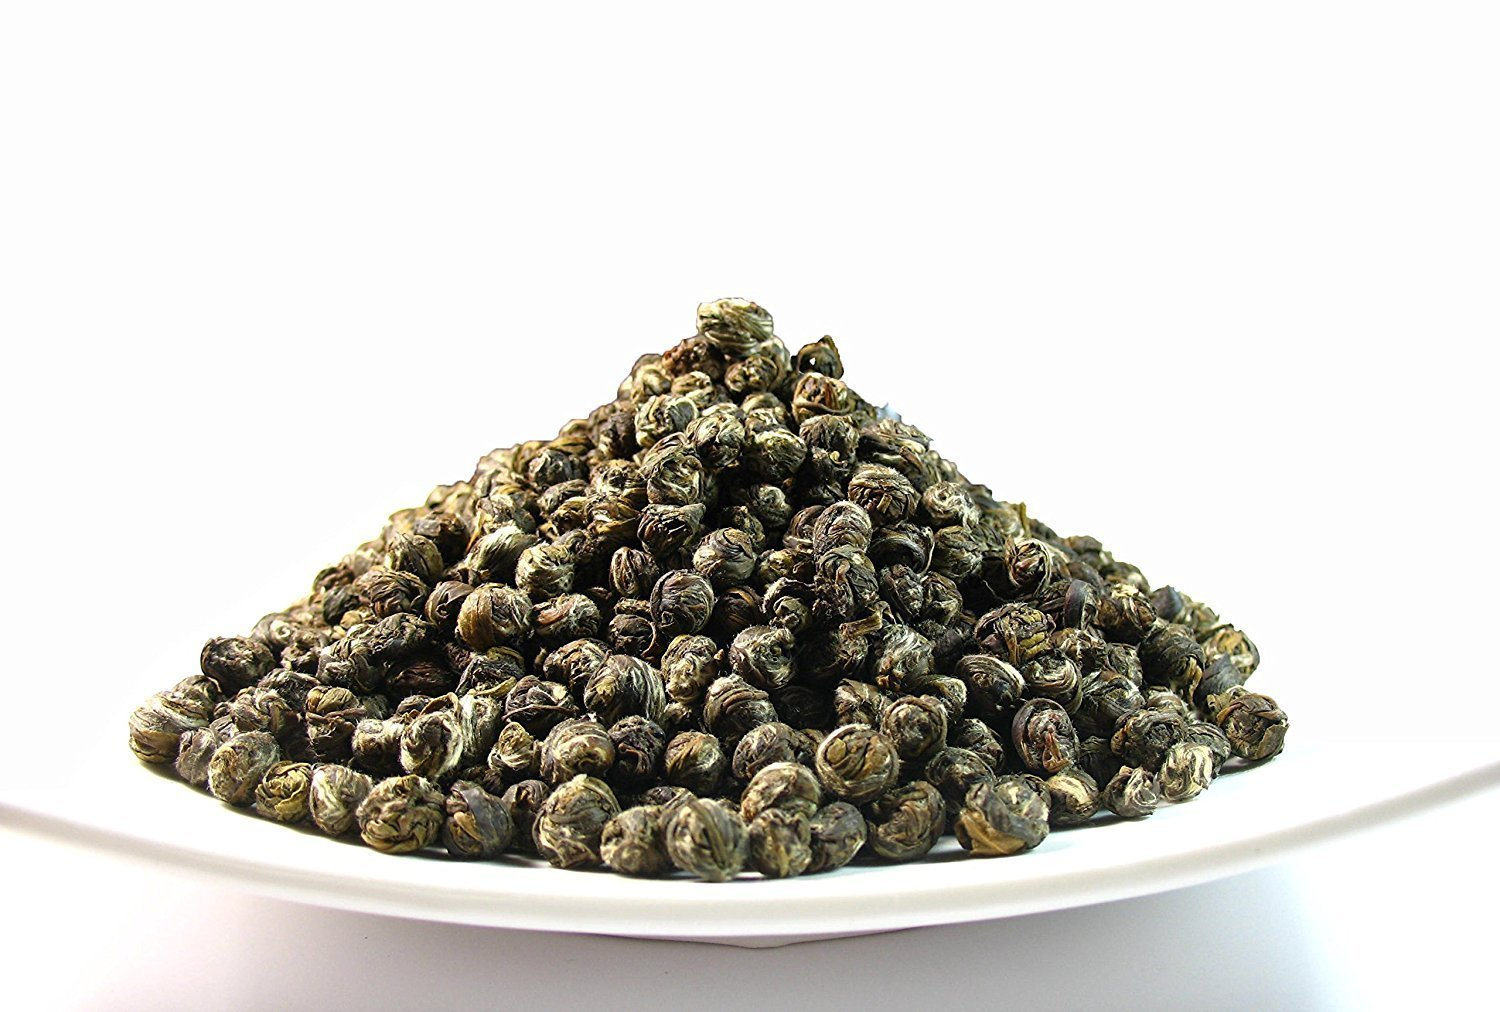 Pearl Jasmine Tea, Delicately-processed tea that is made from tender buds and tea leaves – 4 Oz Bag